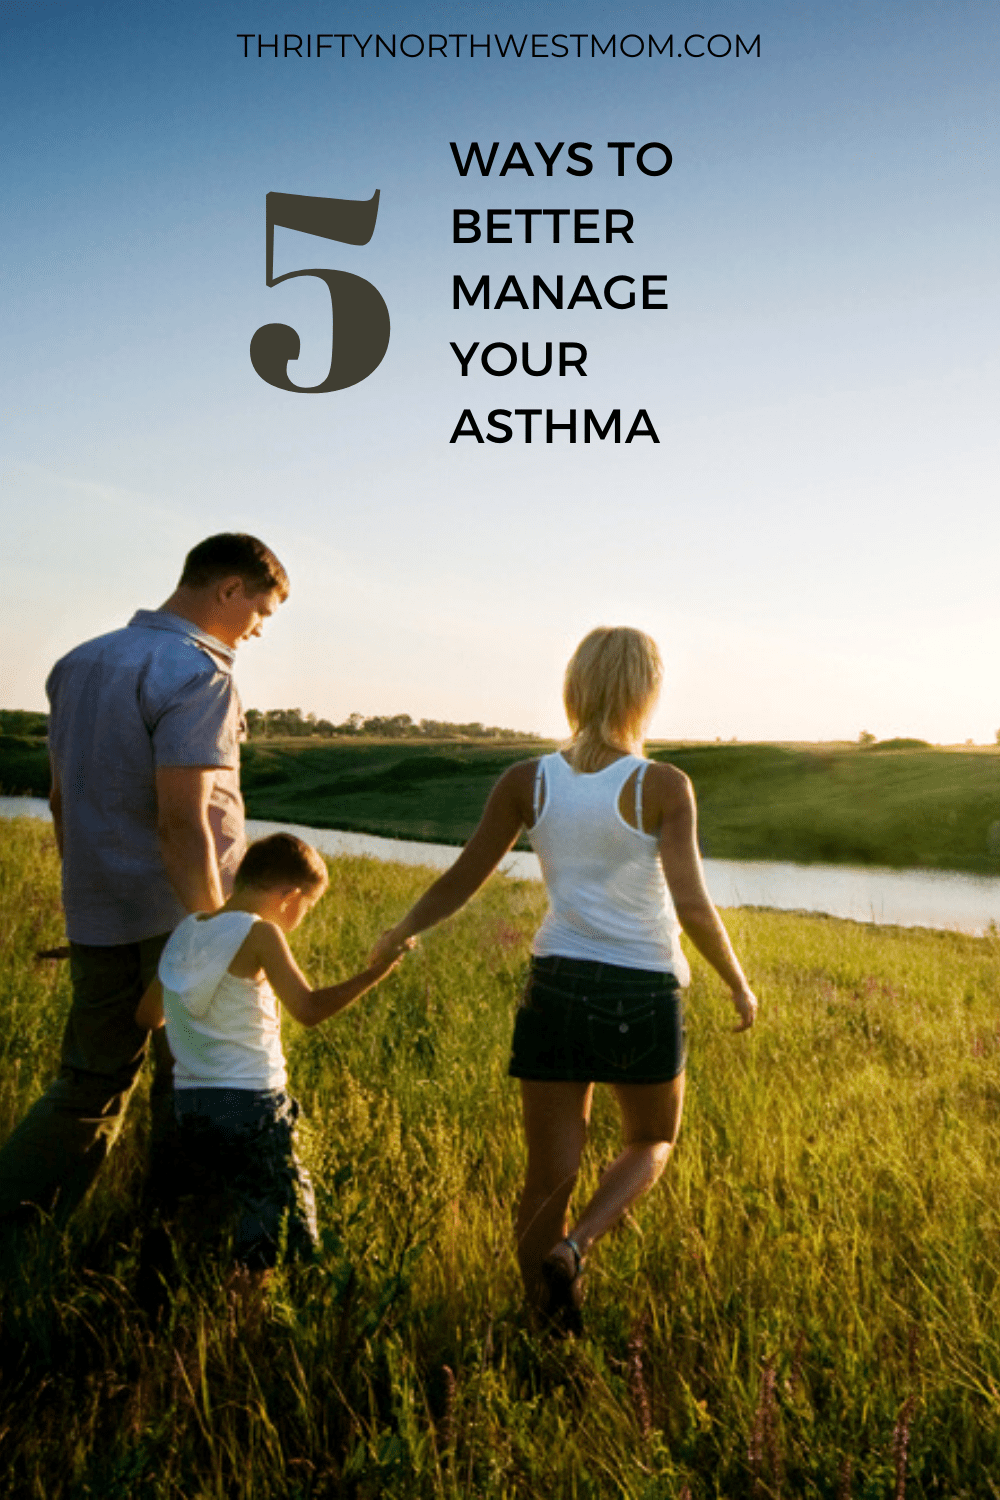 5 Tips for Better Asthma Management